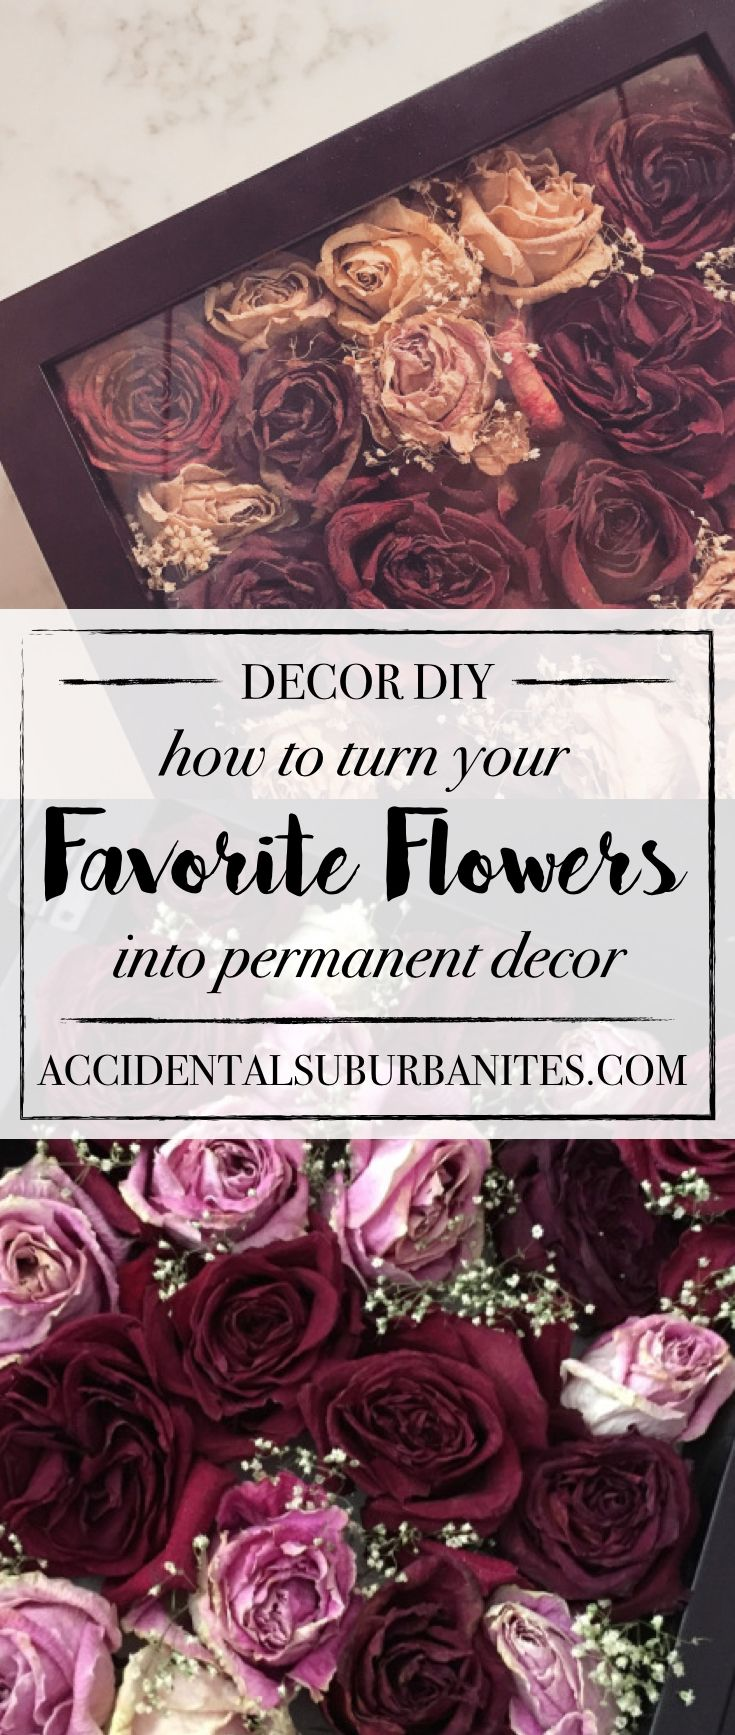 Diy Dried Roses In A Shadow Box Preserve Roses Want To Turn A